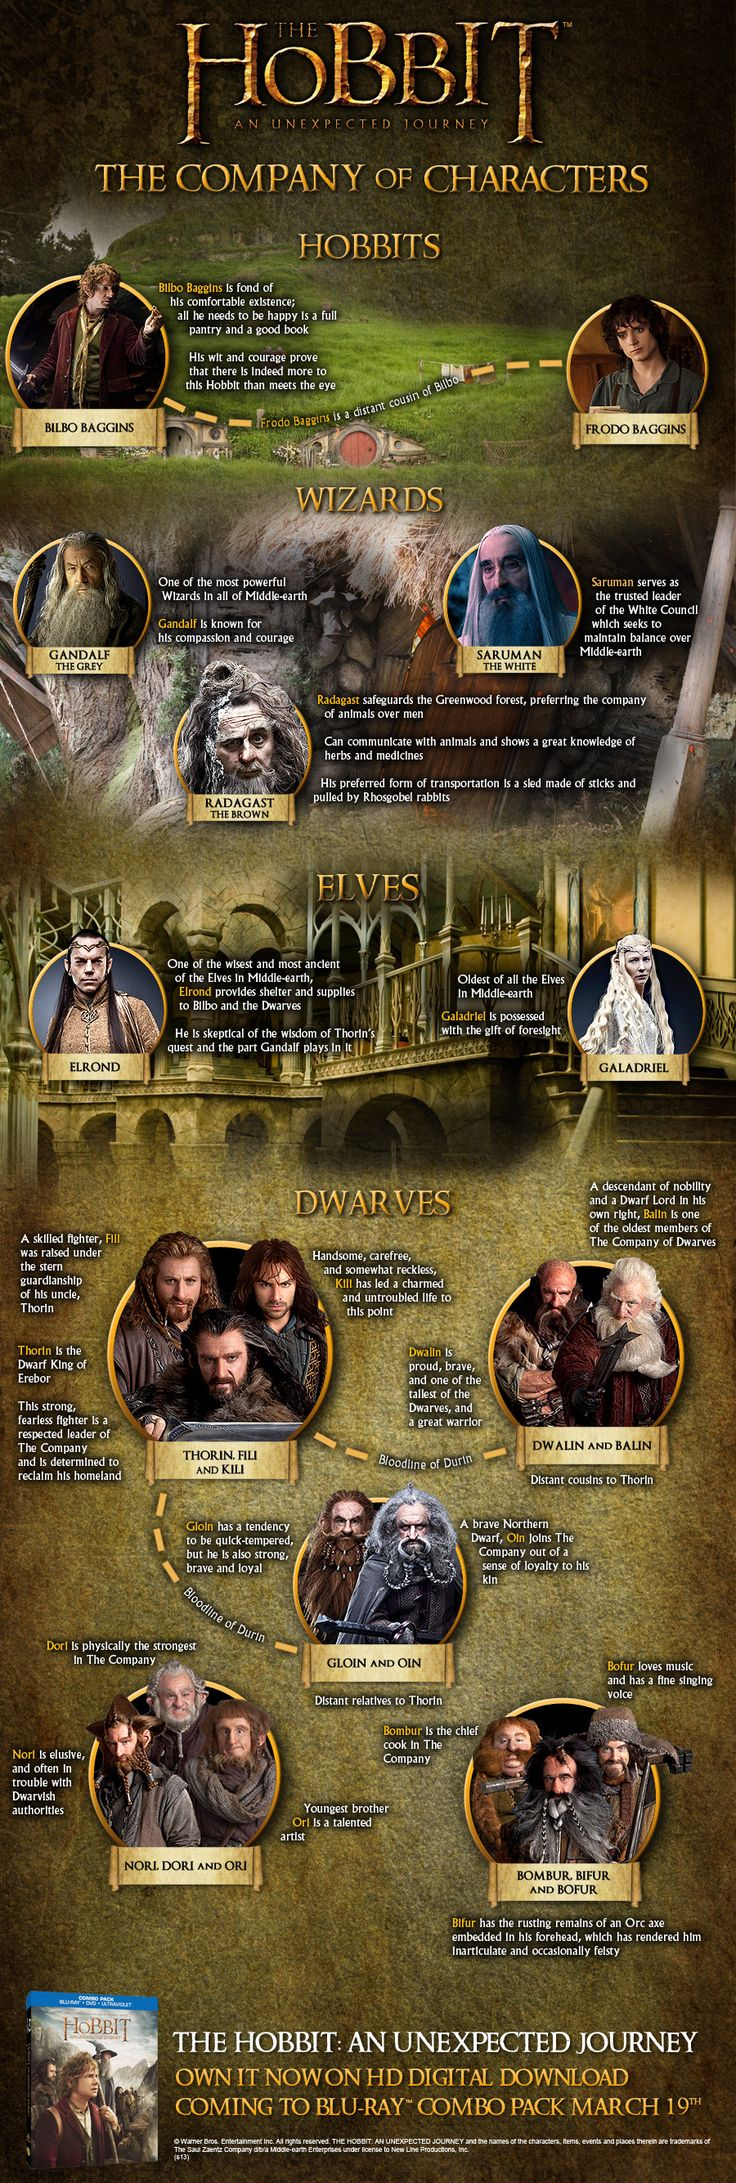 """How To Make Sense Of All The Characters From """"The Hobbit"""""""